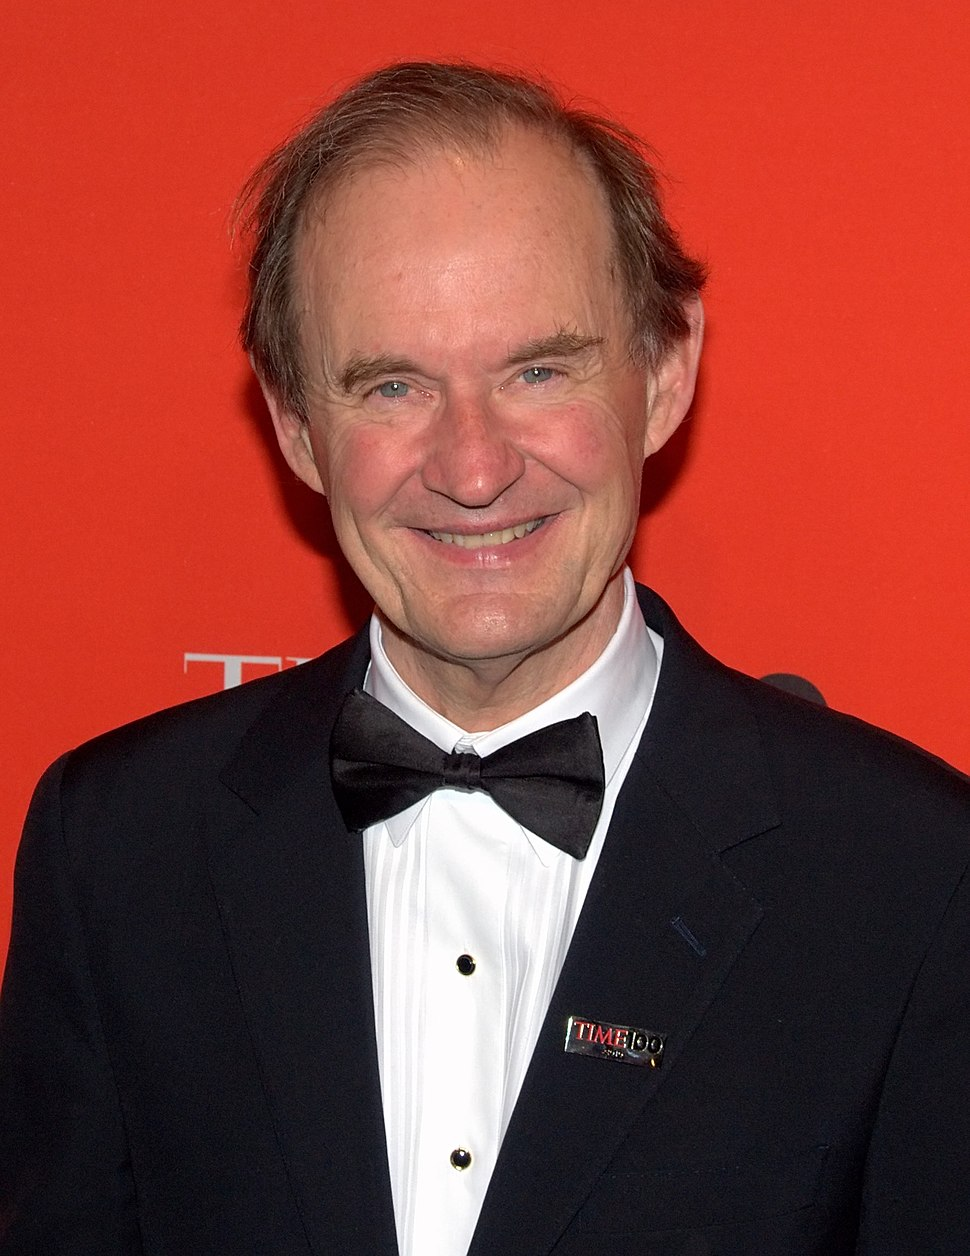 David Boies by David Shankbone